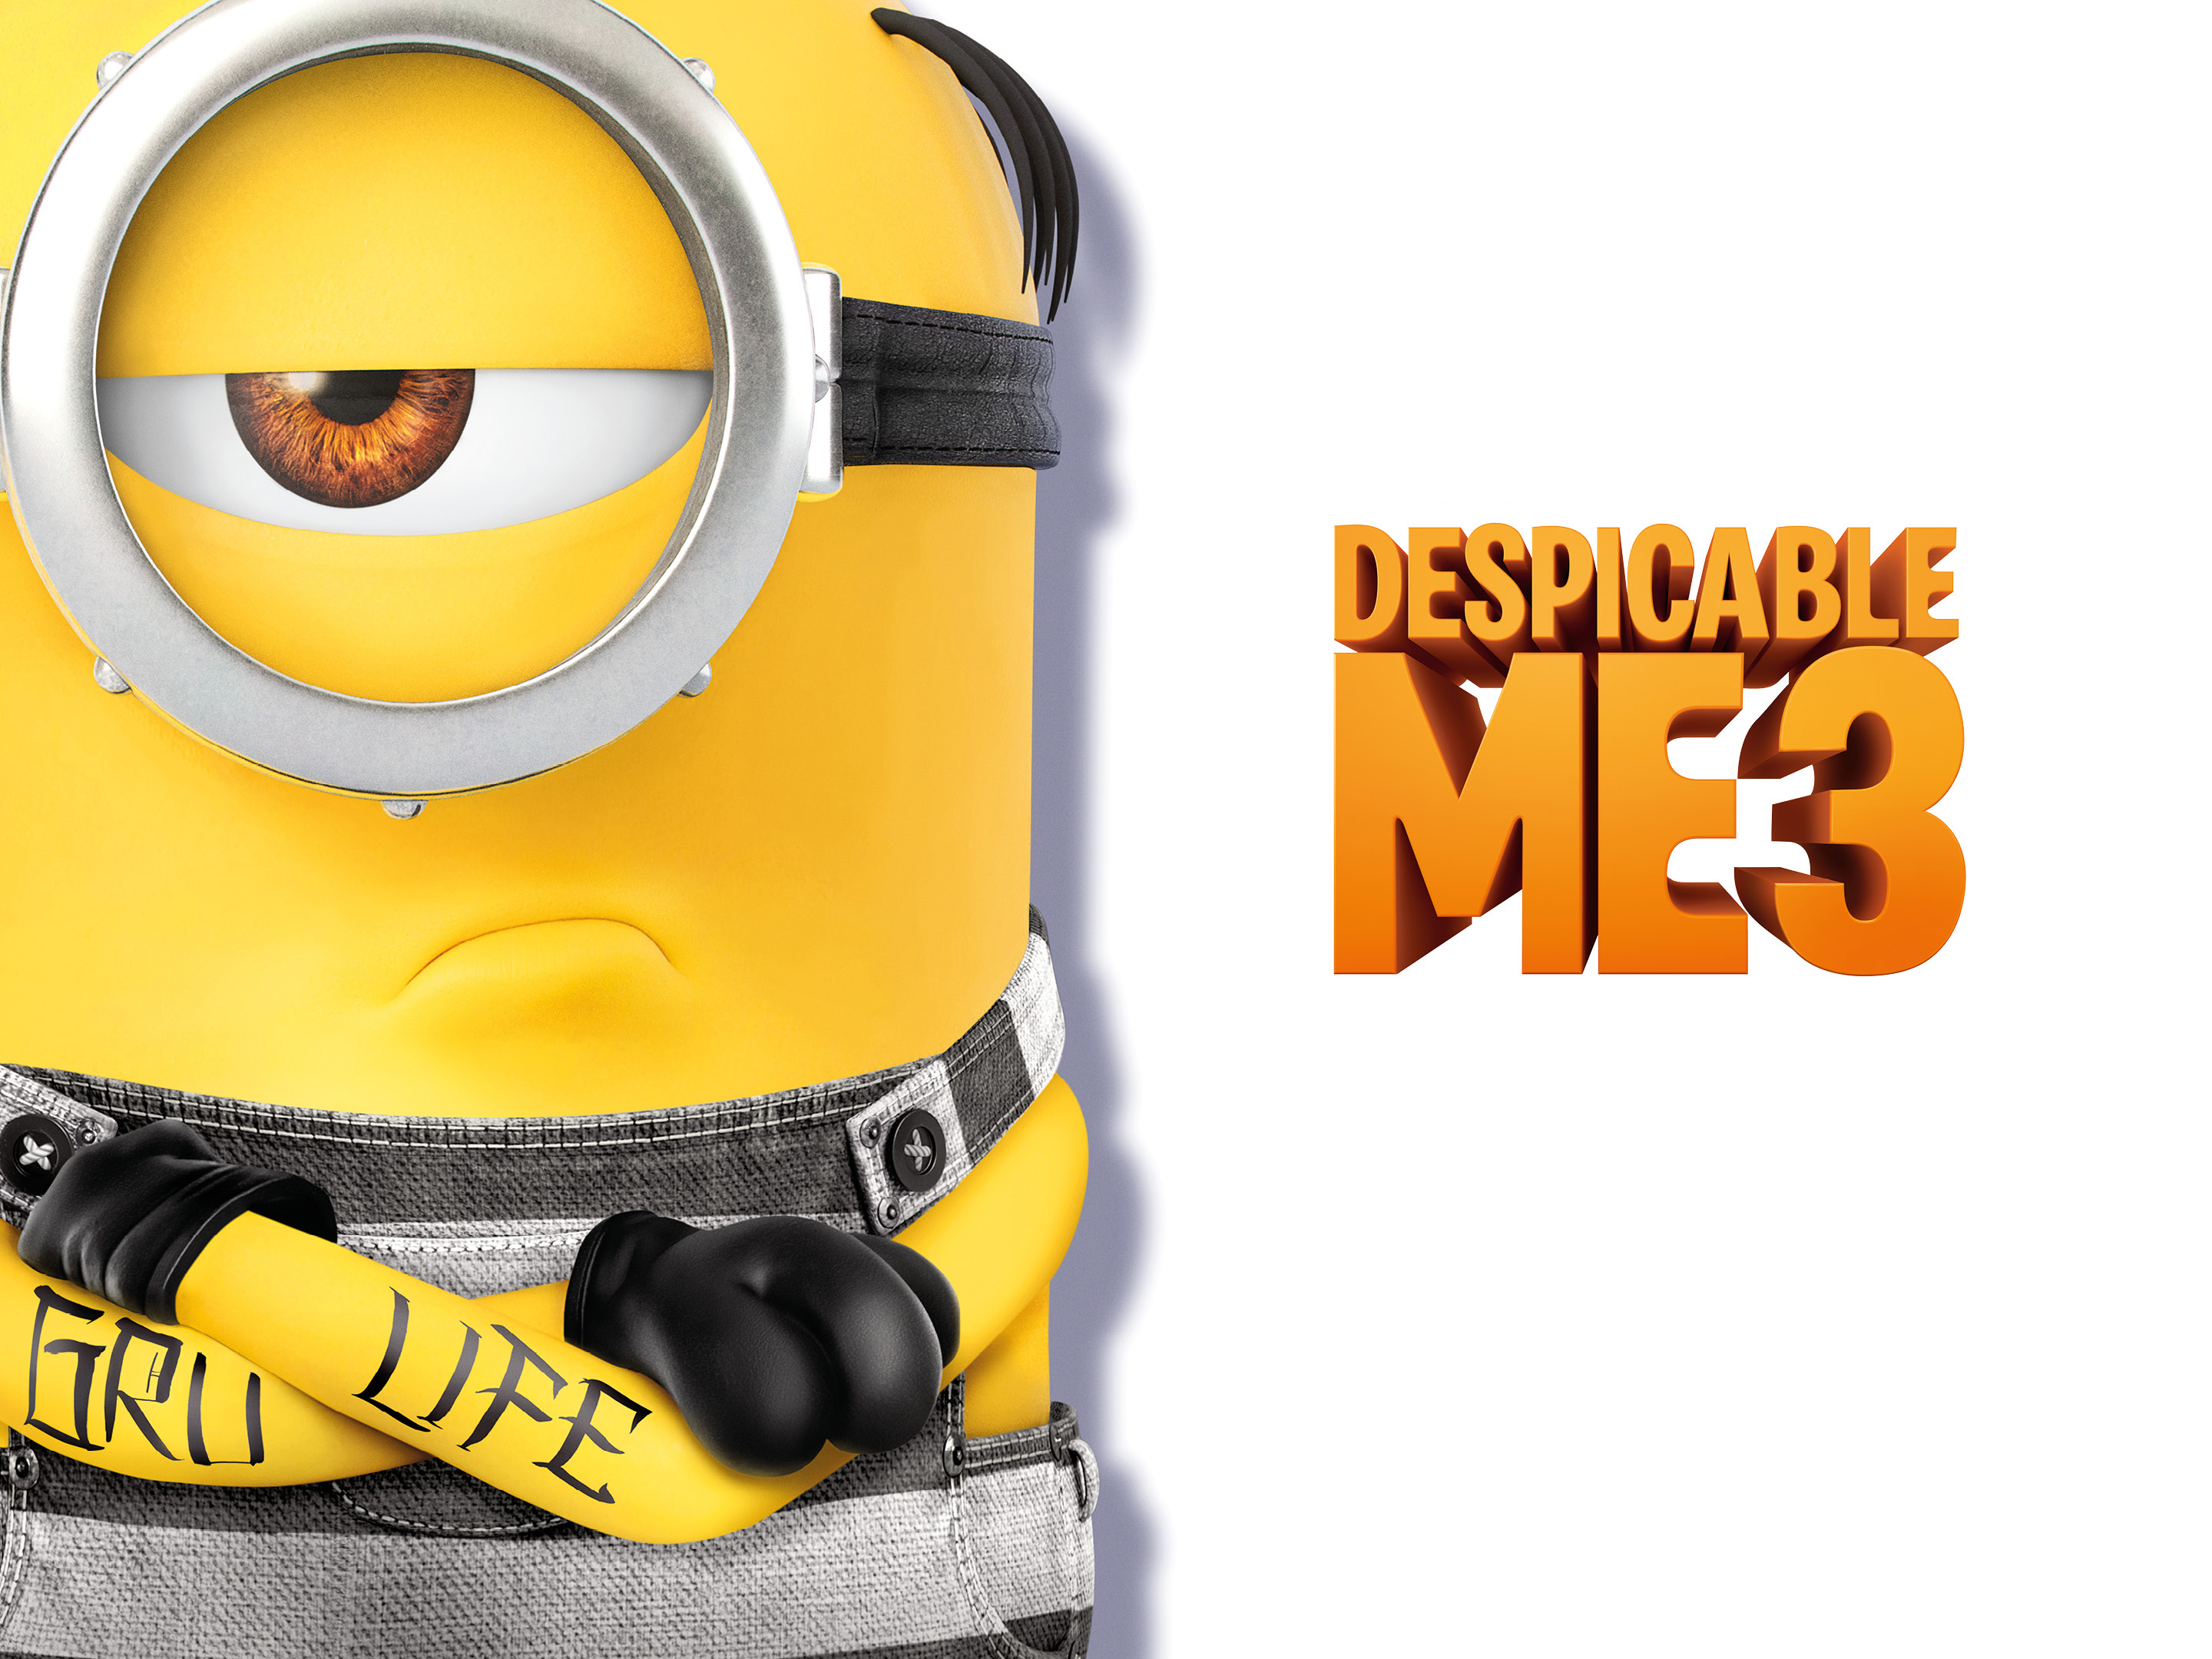 minion despicable me 3, hd movies, 4k wallpapers, images